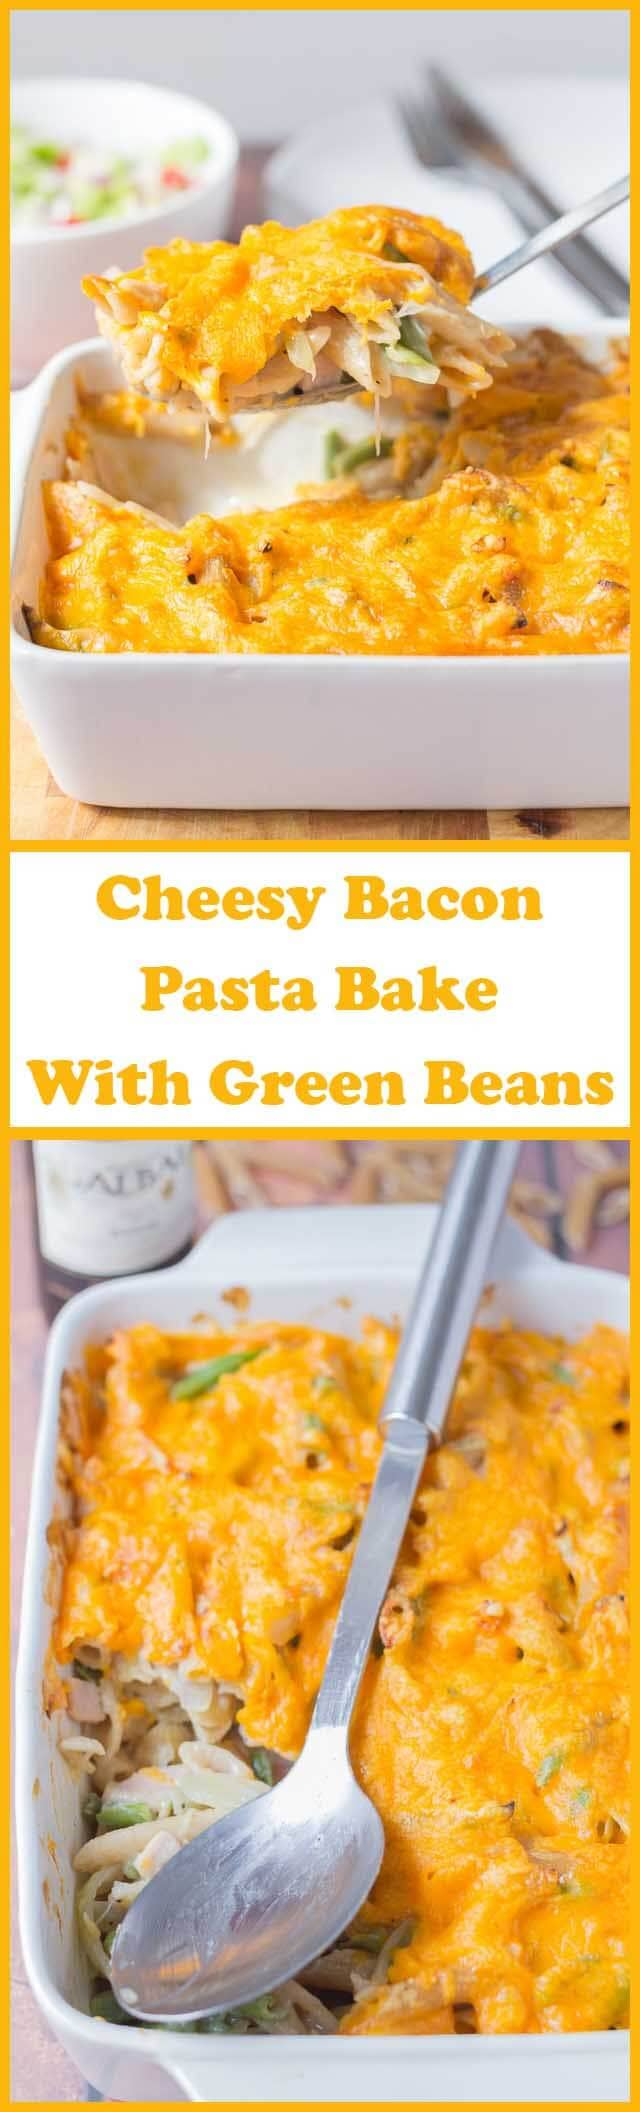 Cheesy bacon pasta bake with green beans is a really tasty and simple family recipe. On the dinner table in less than one hour, this is a terrific quick healthy meal that requires hardly any effort at all!